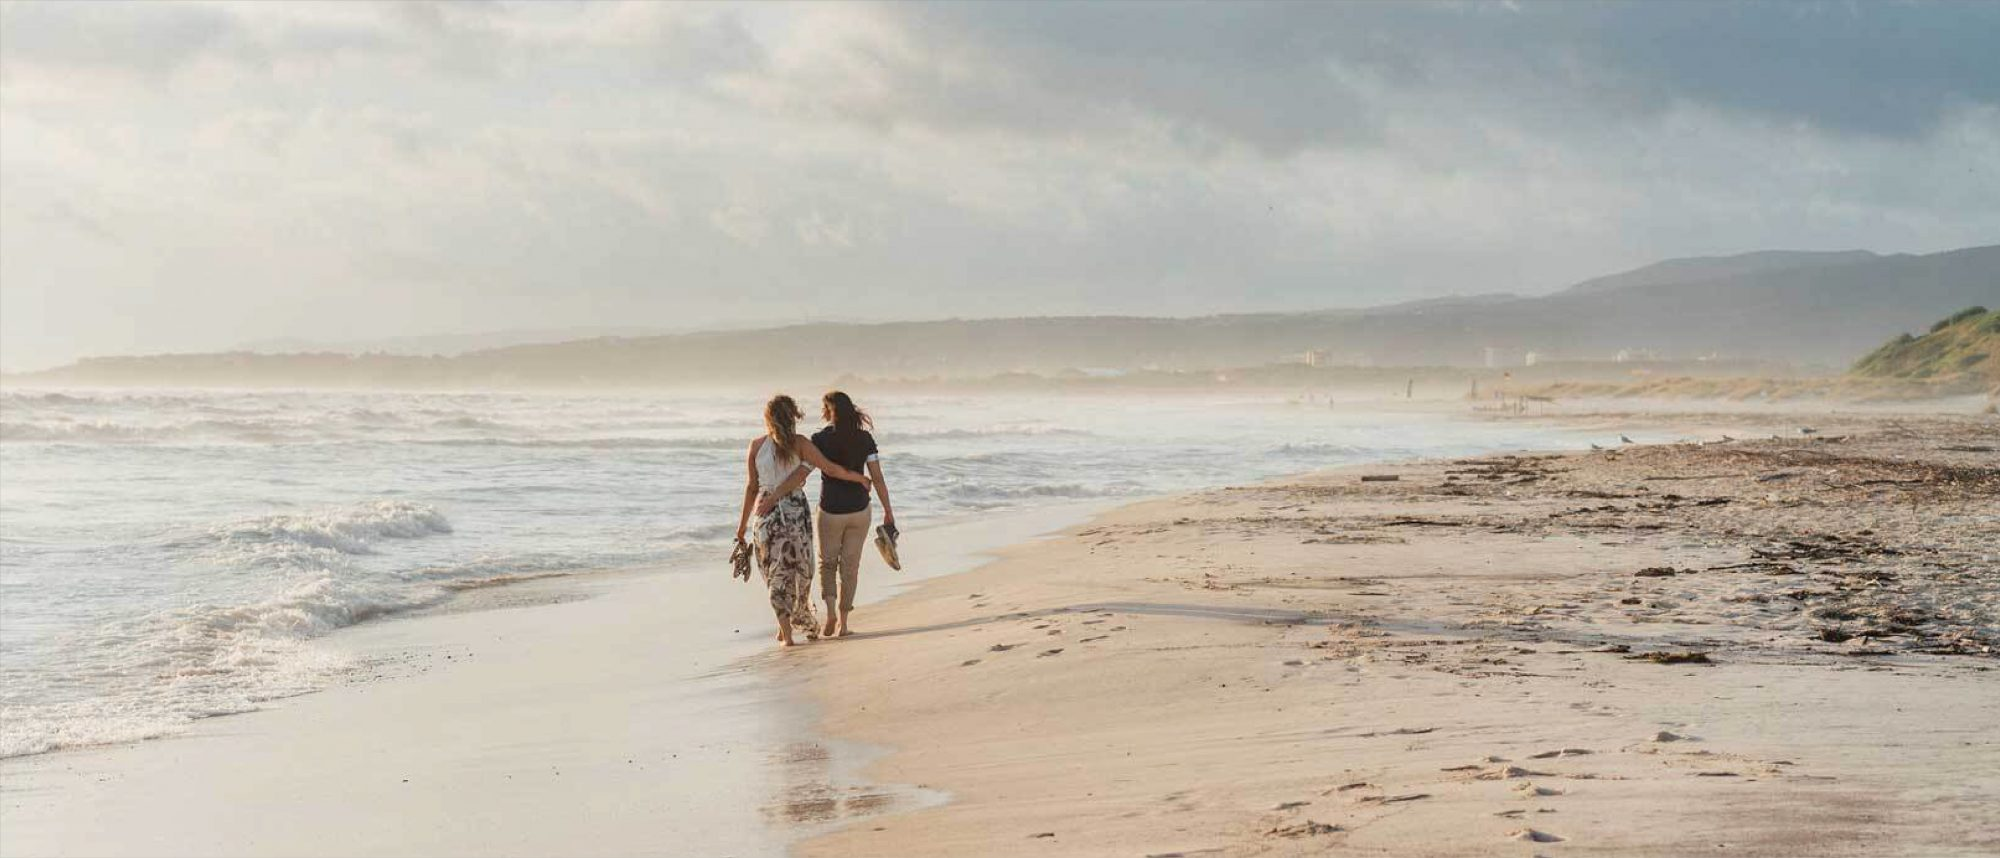 Two women walking on a beach during the day.